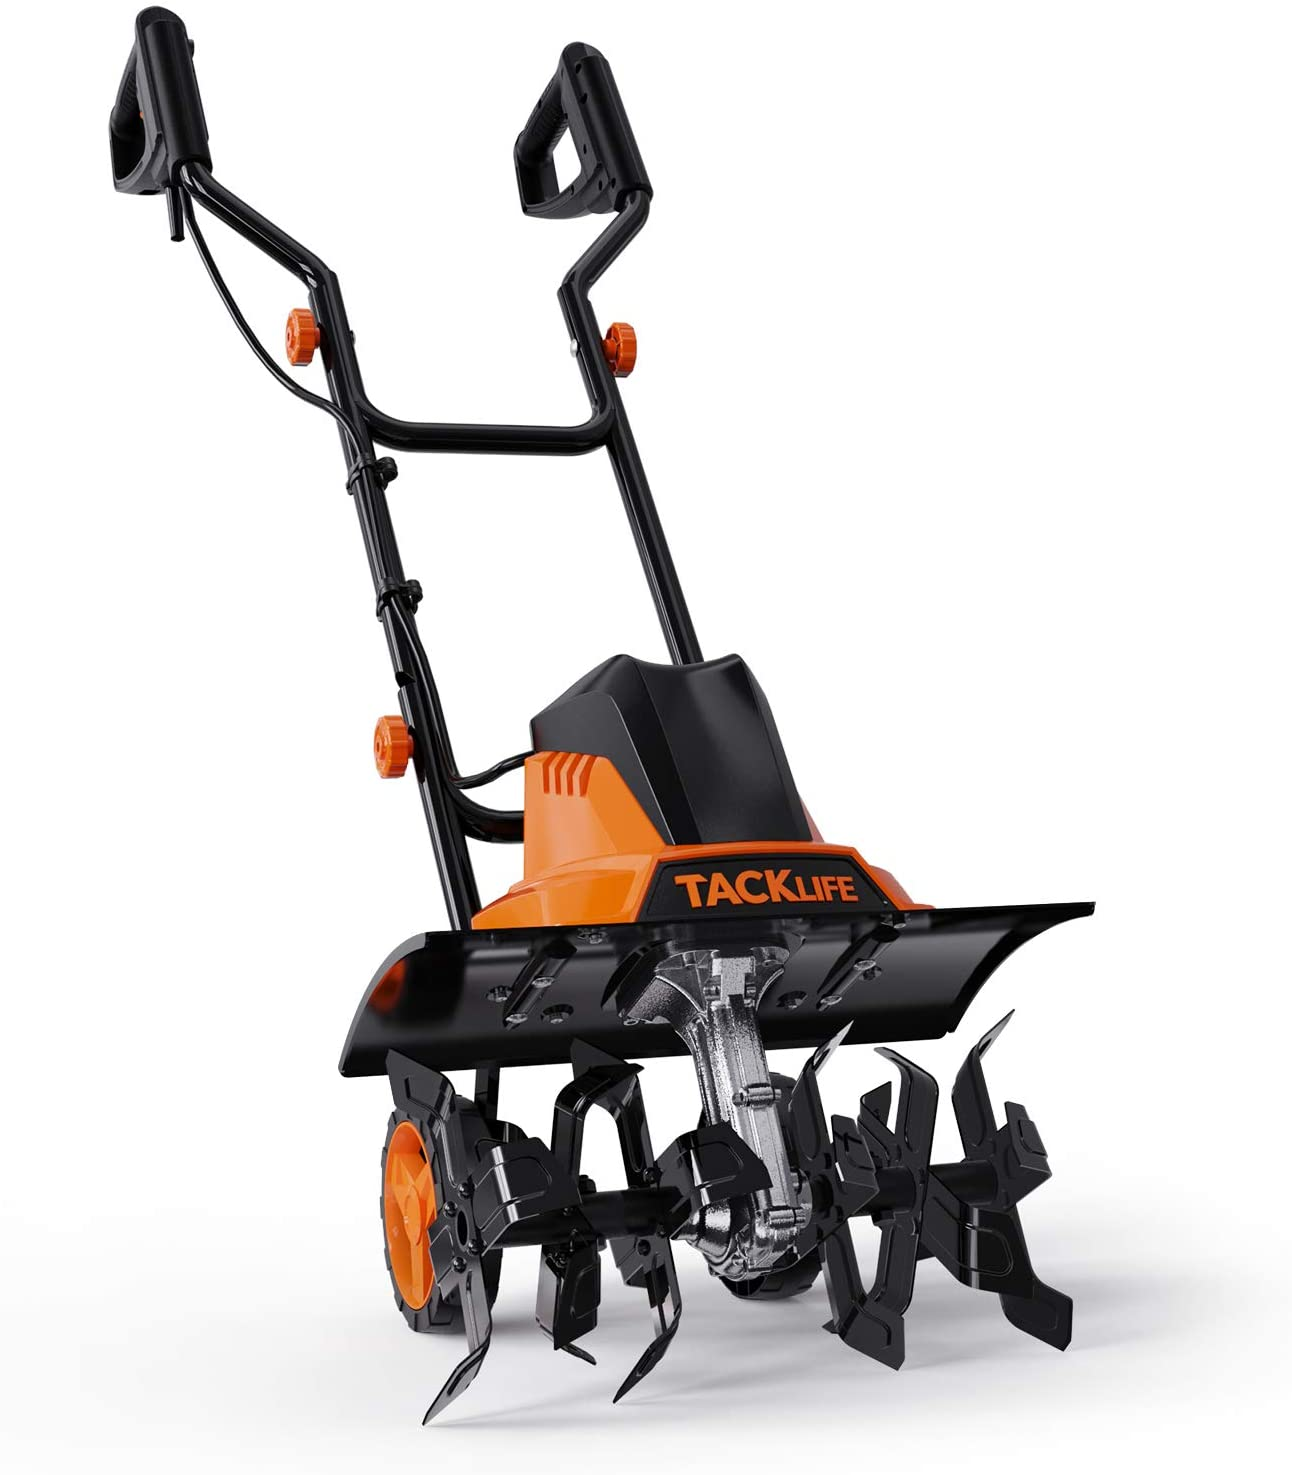 TACKLIFE TGTL02A Electric Tiller